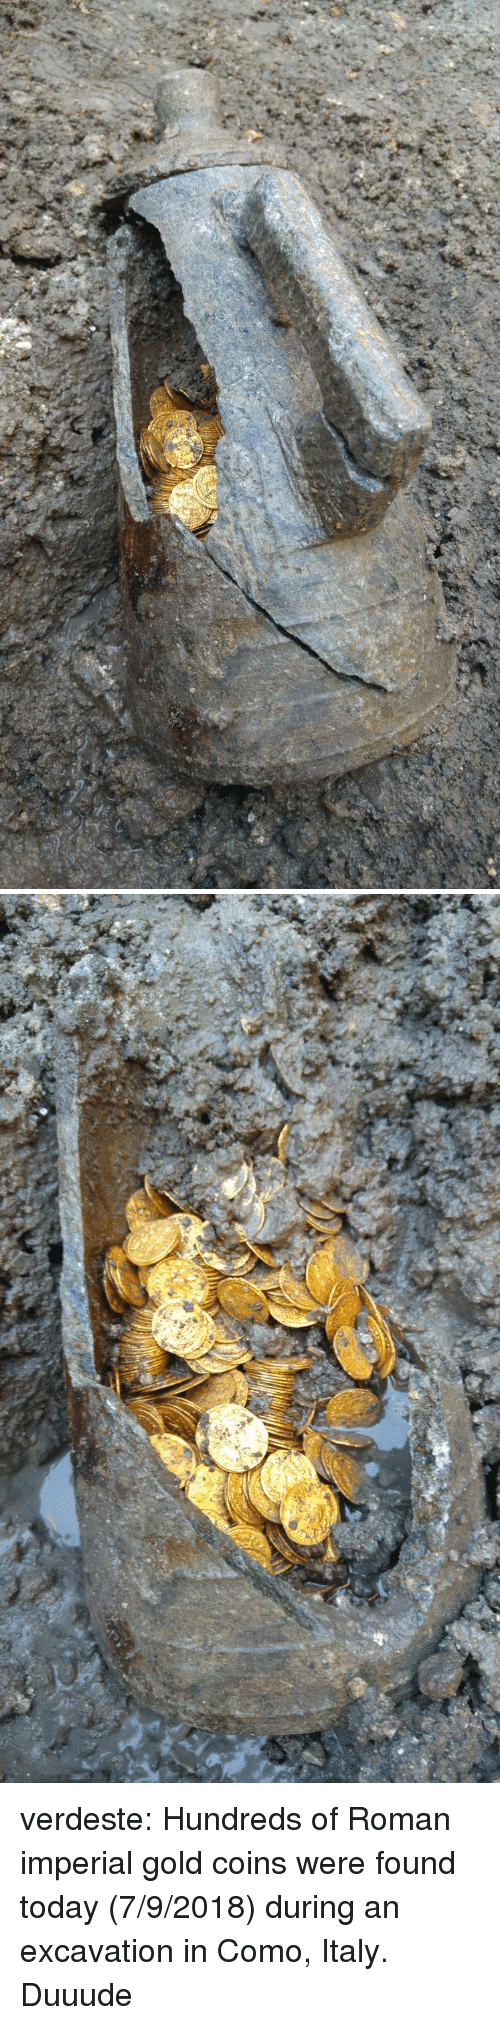 Tumblr, Blog, and Http: verdeste: Hundreds of Roman imperial gold coins were found today (7/9/2018) during an excavation in Como, Italy.  Duuude